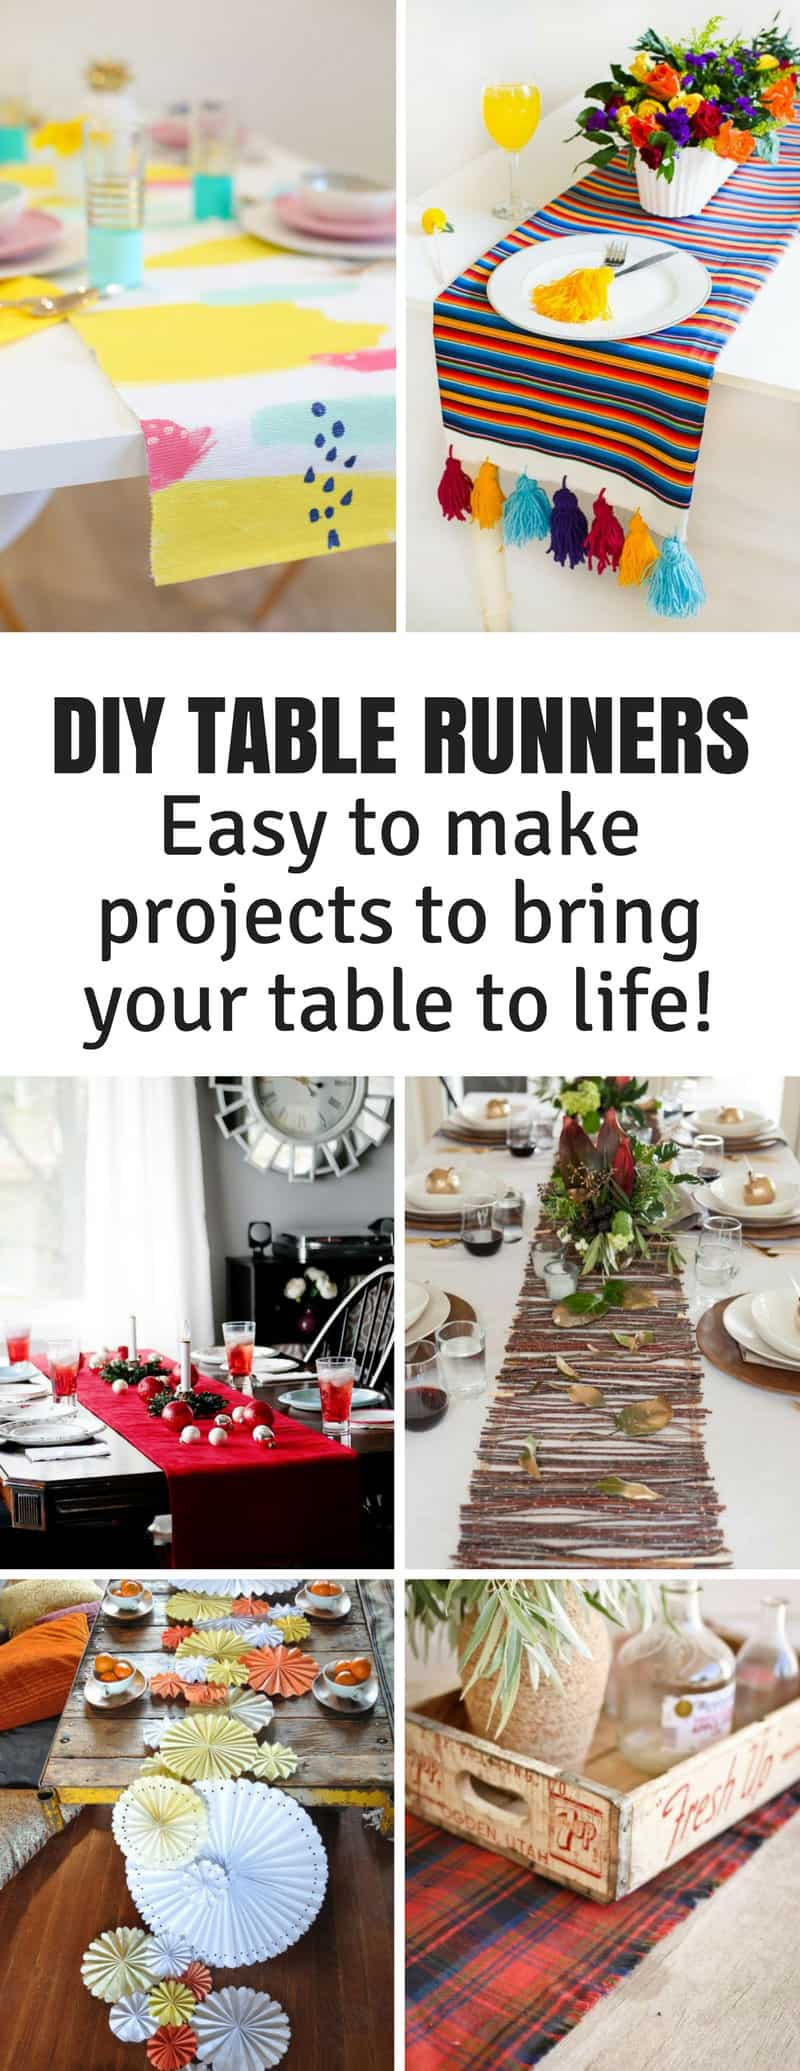 Whether you're planning a Christmas gathering for friends and family, a party for your kids, a meal with friends or a romantic dinner for two you can turn your table into a show stopper with one of these super simple DIY table runners.